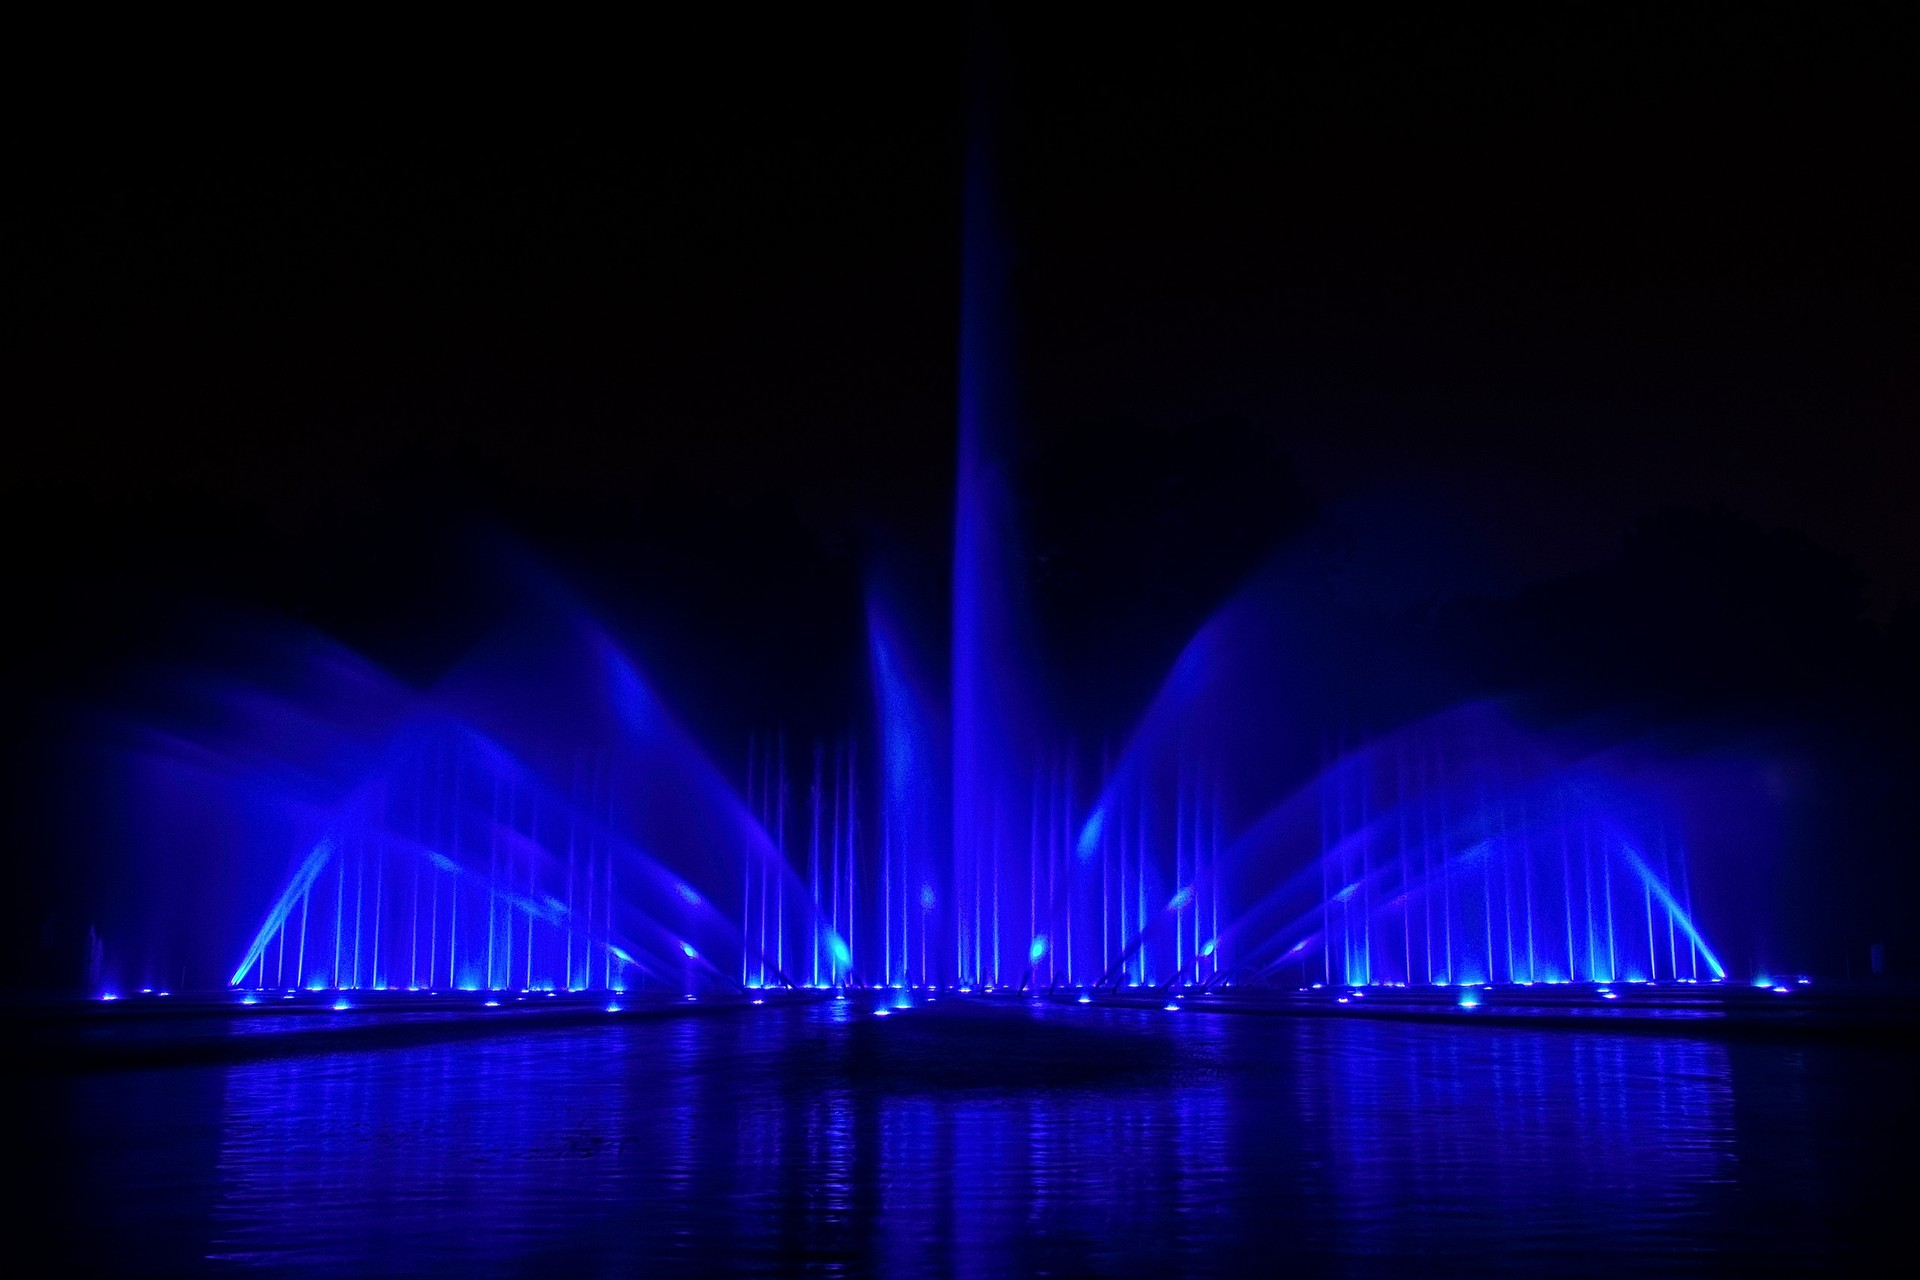 The Blue Fountain